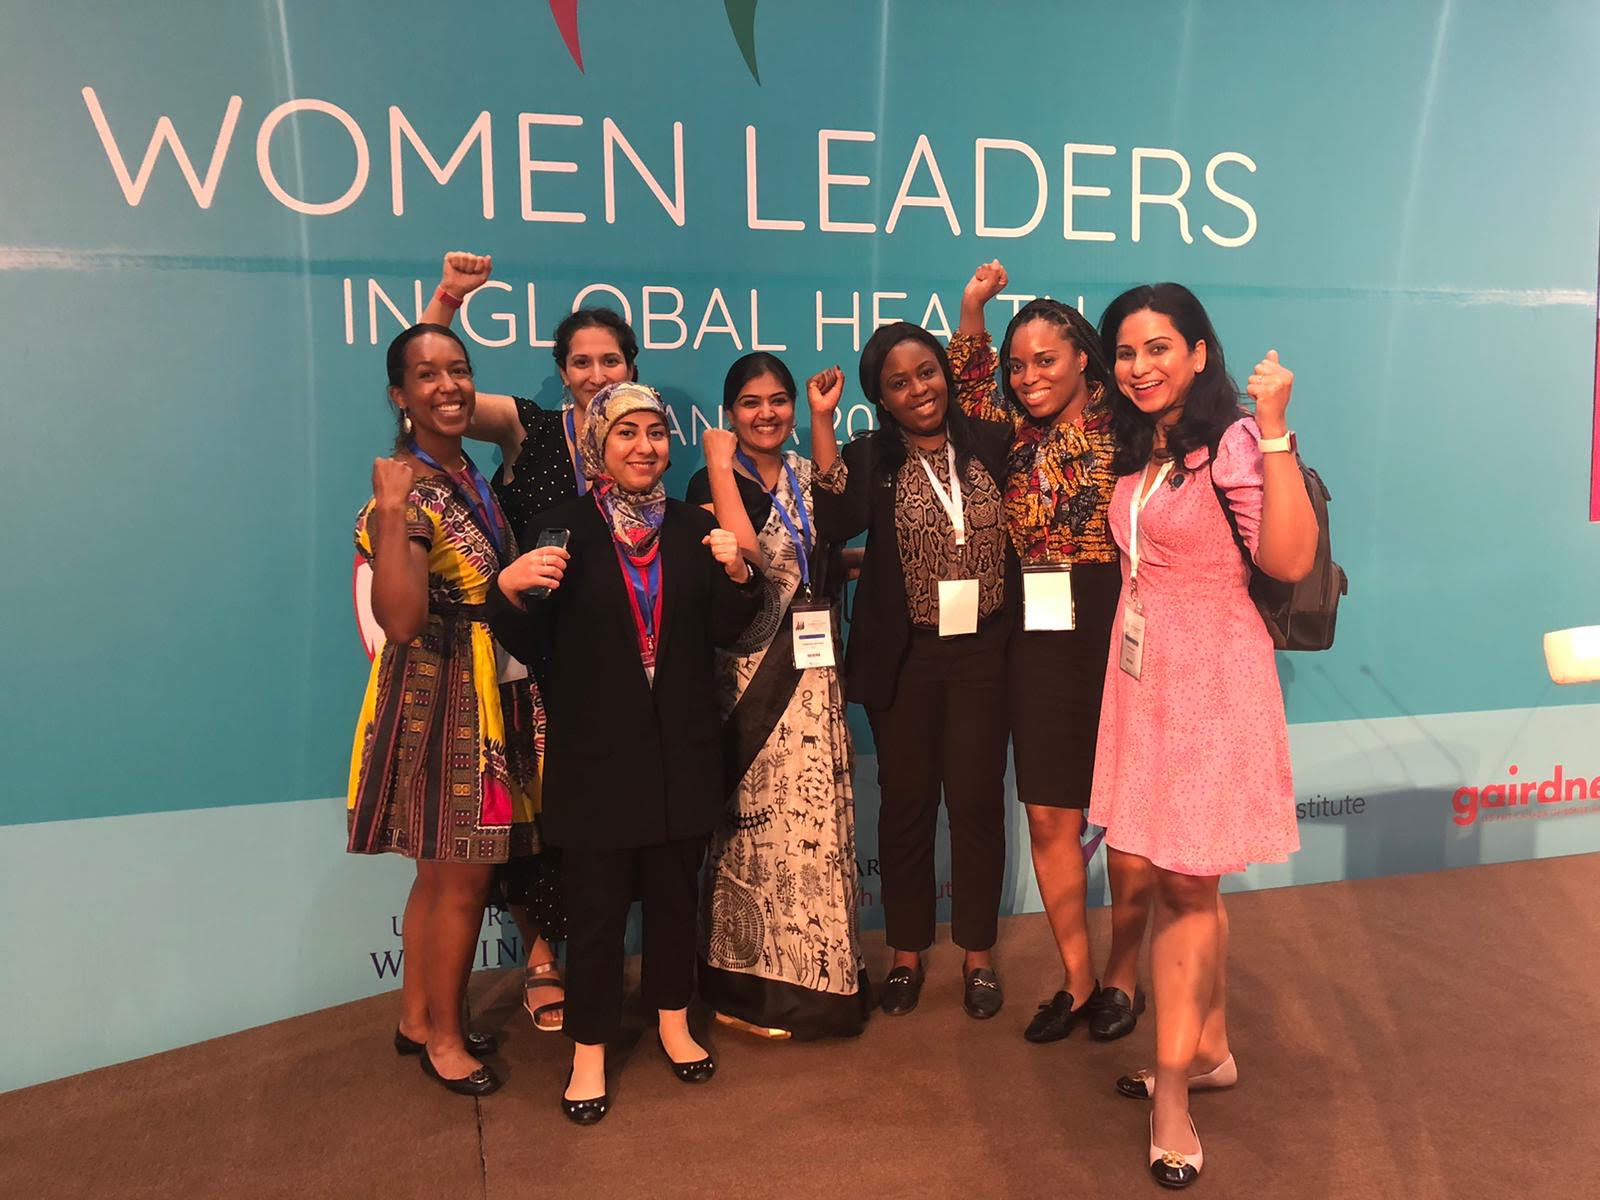 Women Leaders in Global Health Conference 2019